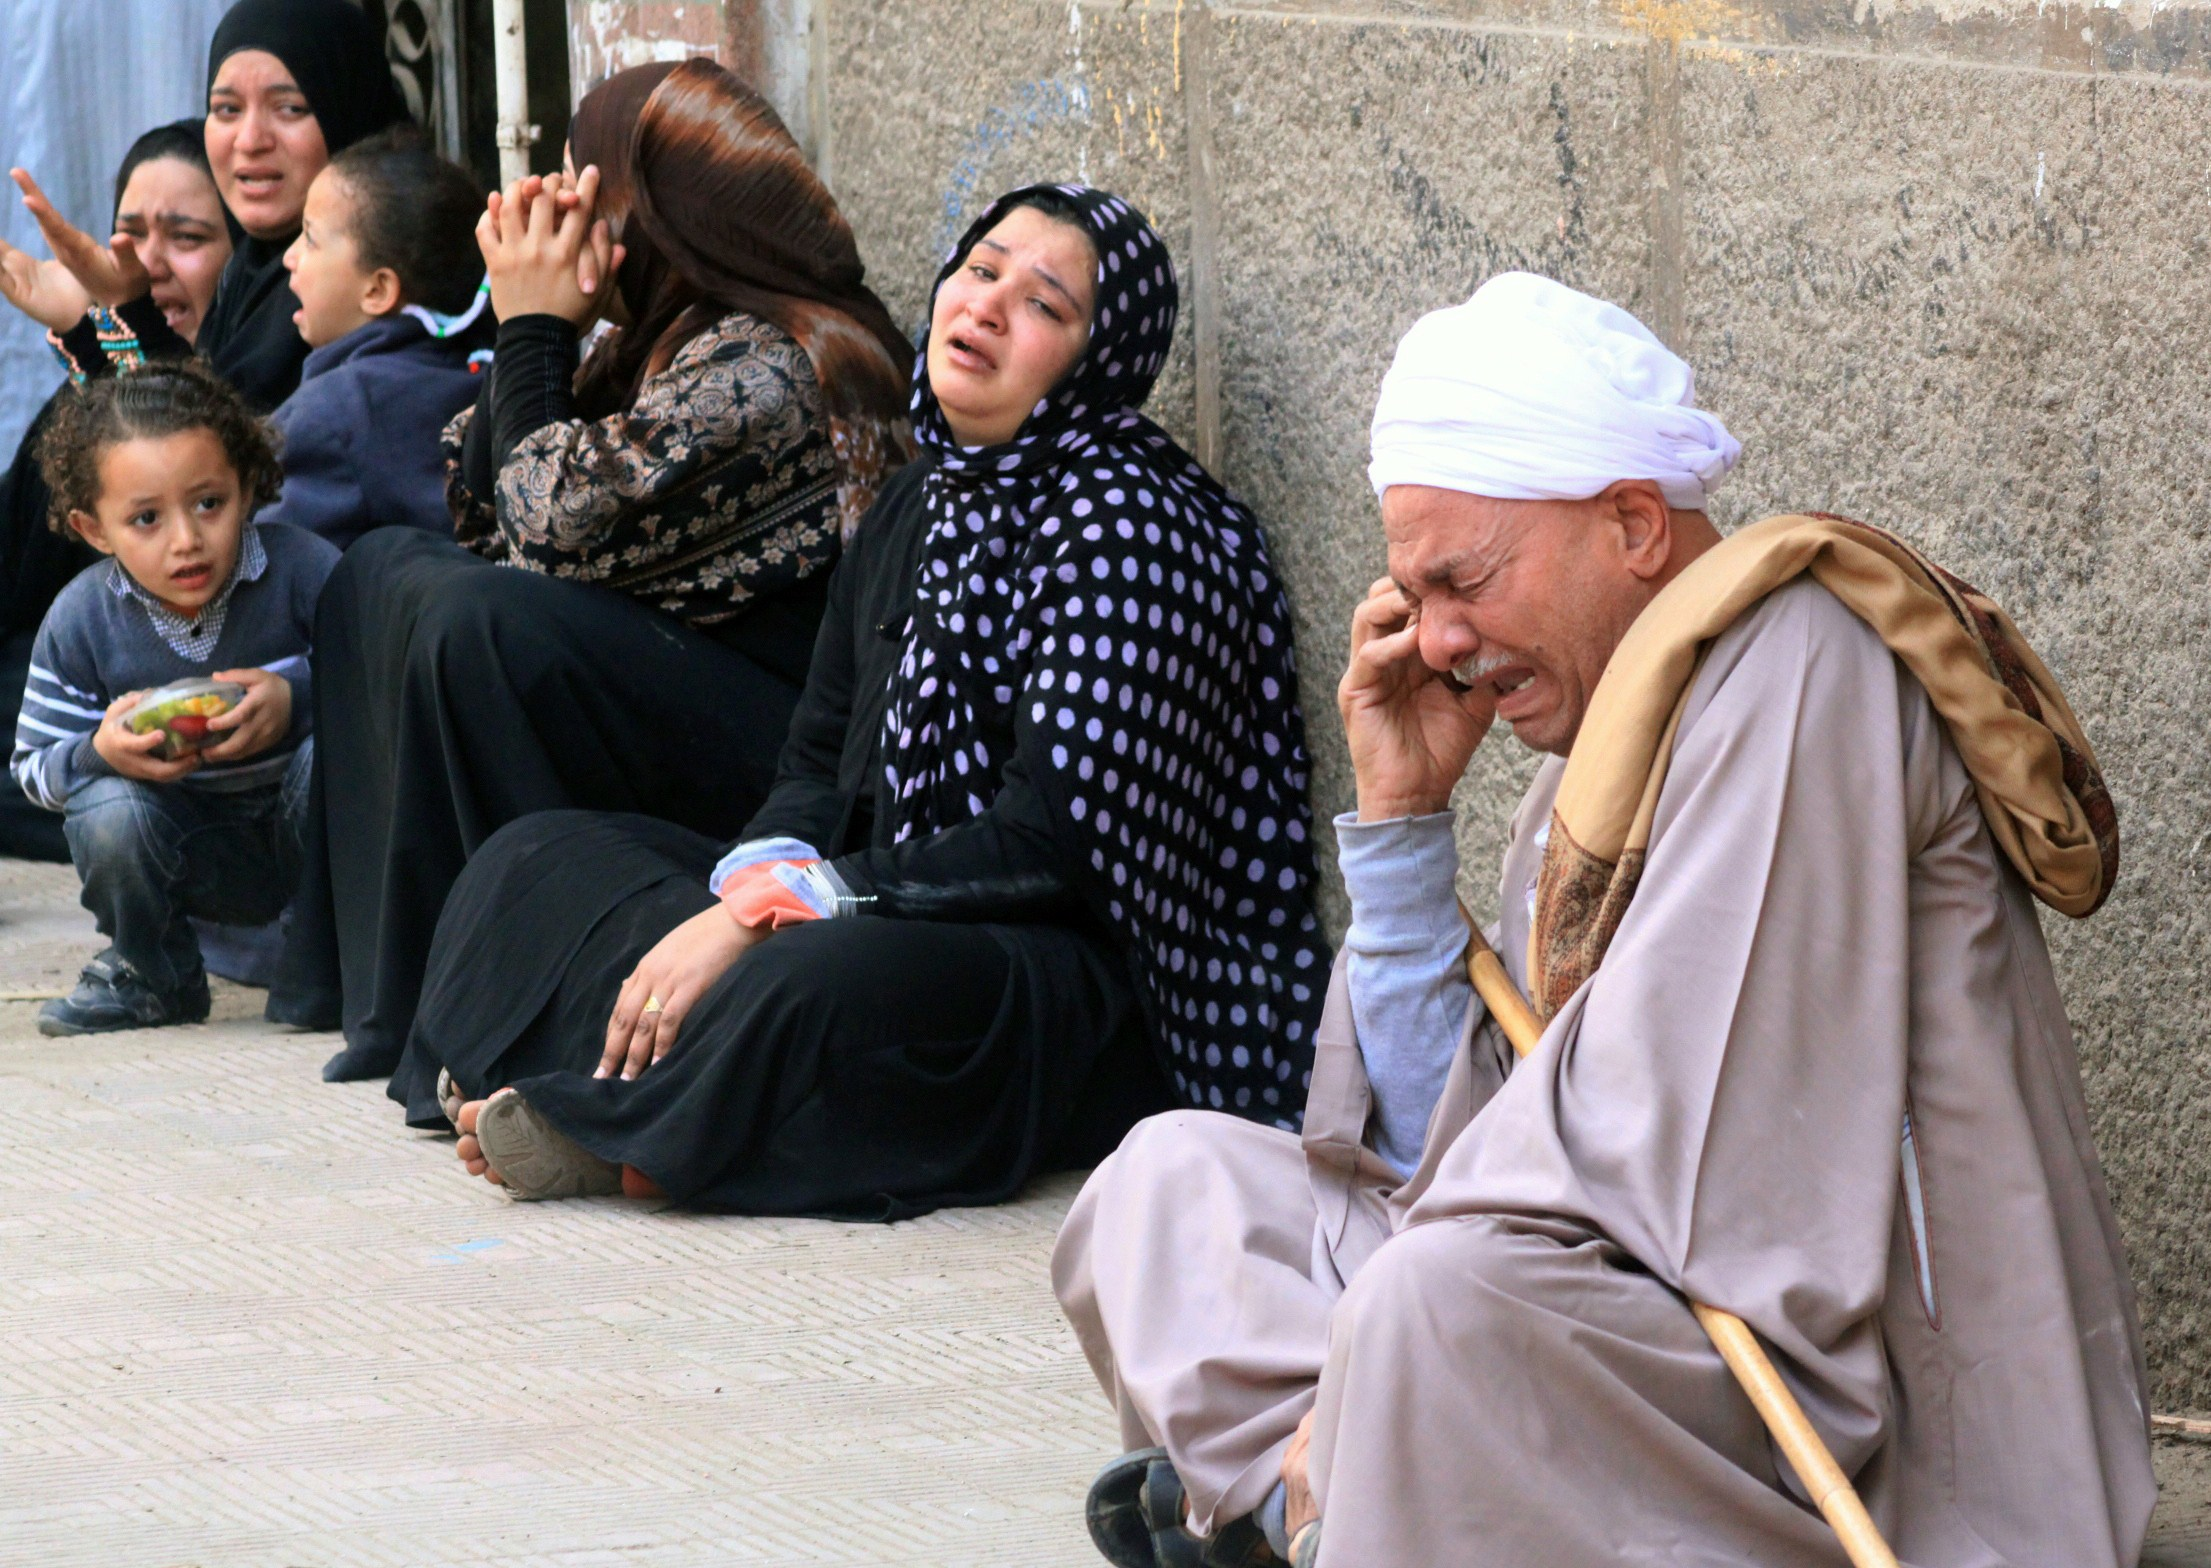 Egyptian relatives of supporters of ousted Islamist president Mohamed Morsi cry sitting outside the courthouse on March 24, 2014 in the southern province of Minya, after the court ordered the execution of 529 Morsi supporters after only two hearings. The unprecedented verdict, amid an extensive crackdown on Morsi supporters, is likely to be overturned on appeal, legal experts said.    (AFP PHOTO / STR)